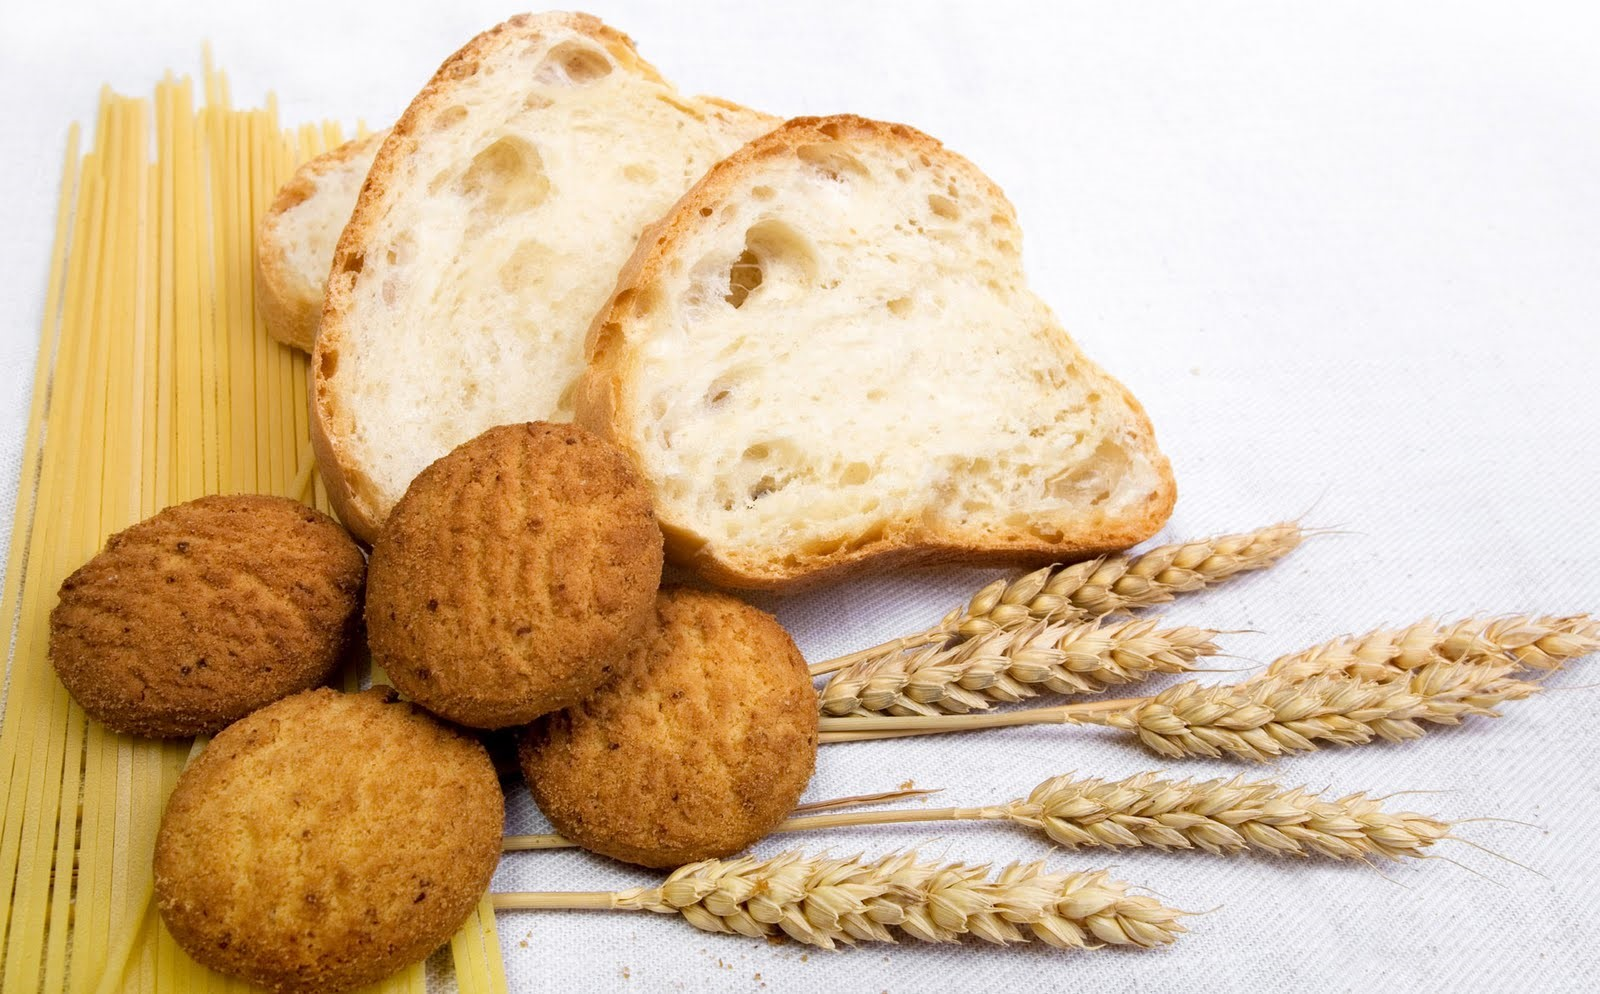 Gluten Free Diet And How It Can Help Reduce Your Weight